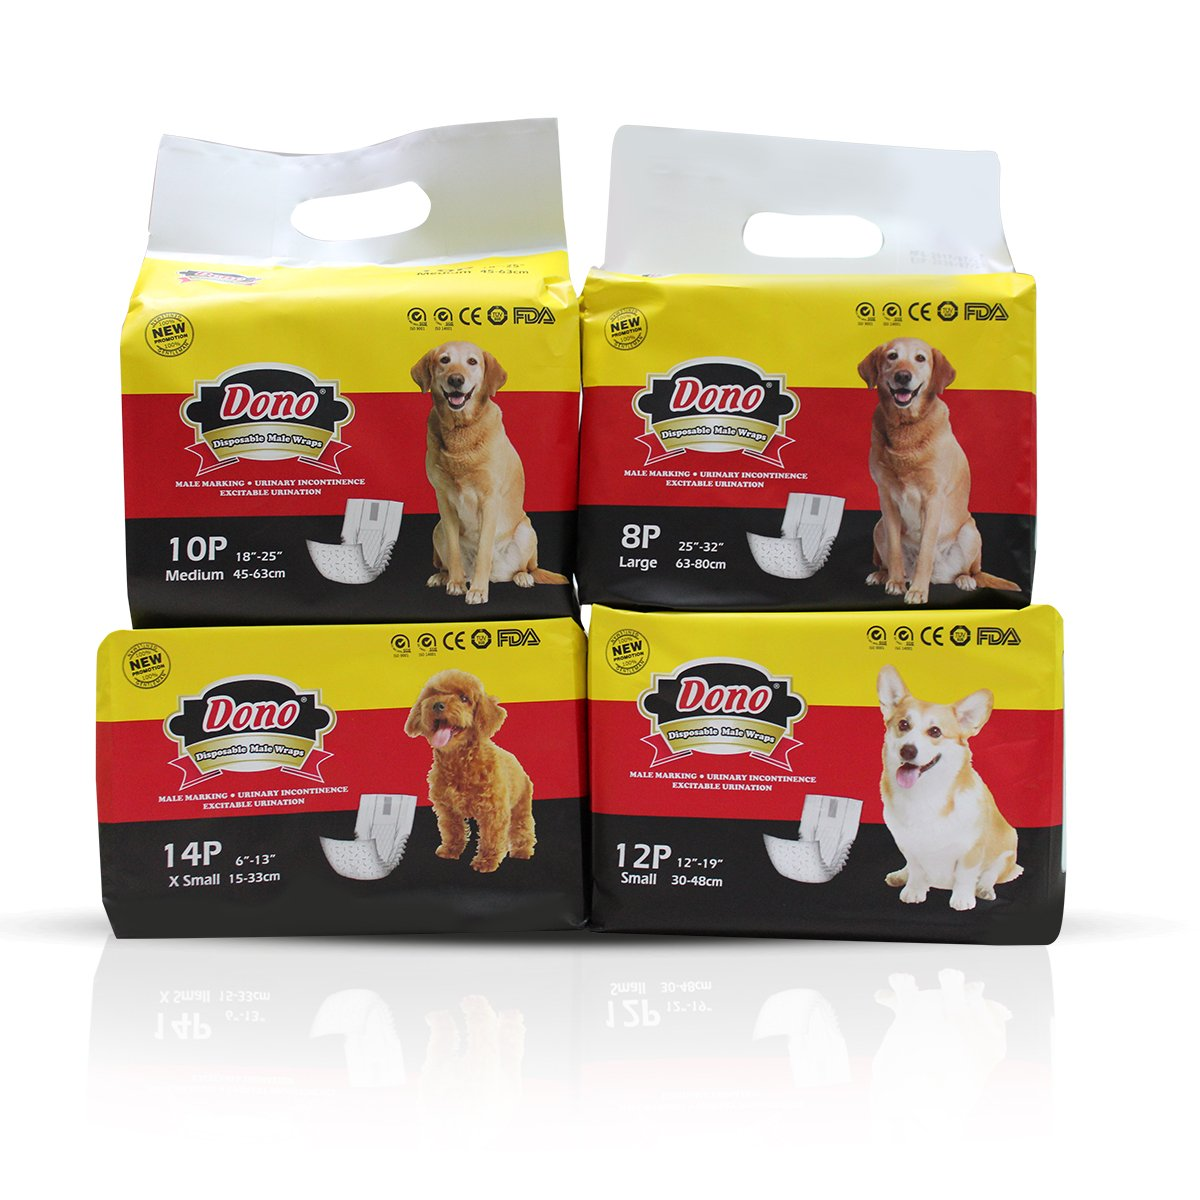 Pet Diaper Male Dog Diaper Pet Disposable Nappy Male Dog Diapers With Wetness Indicator DONO XS, S, M, L (XS): Amazon.es: Productos para mascotas